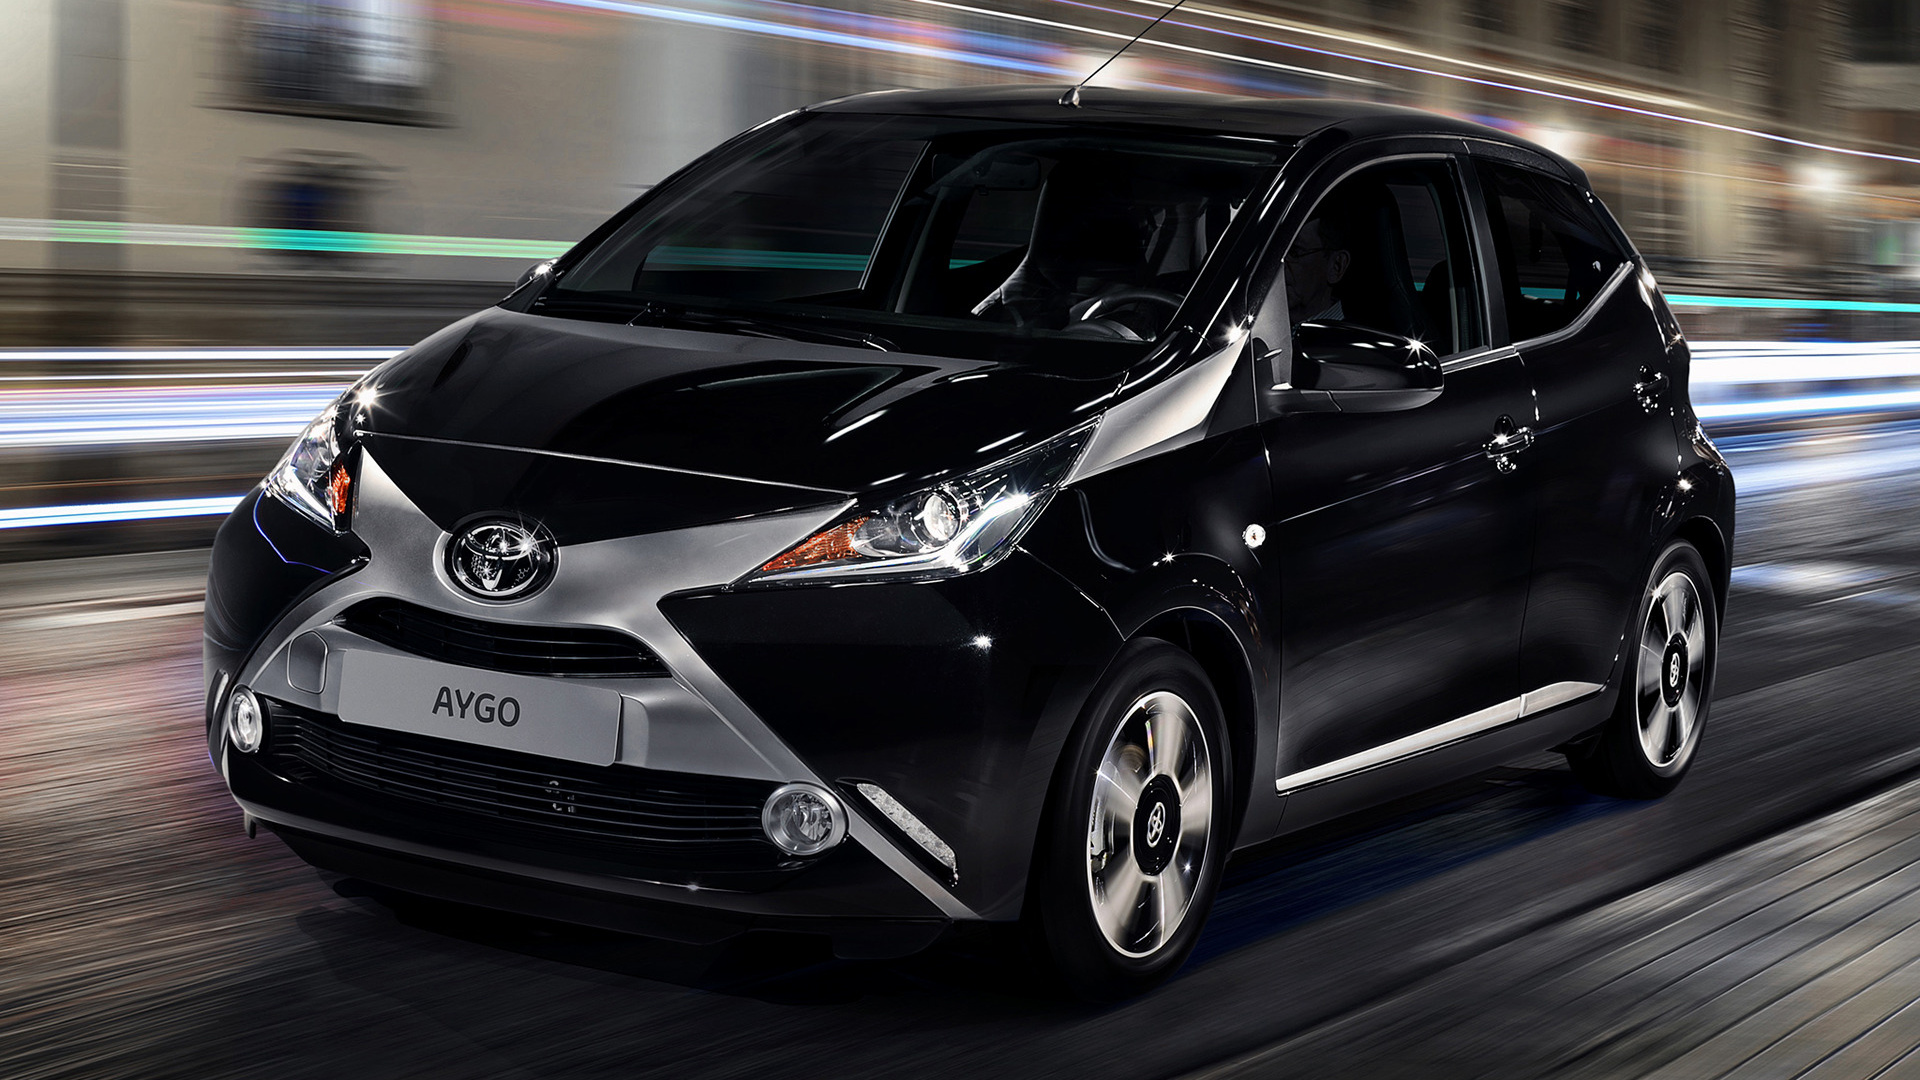 toyota aygo x clusiv 5 door 2014 wallpapers and hd images car pixel. Black Bedroom Furniture Sets. Home Design Ideas